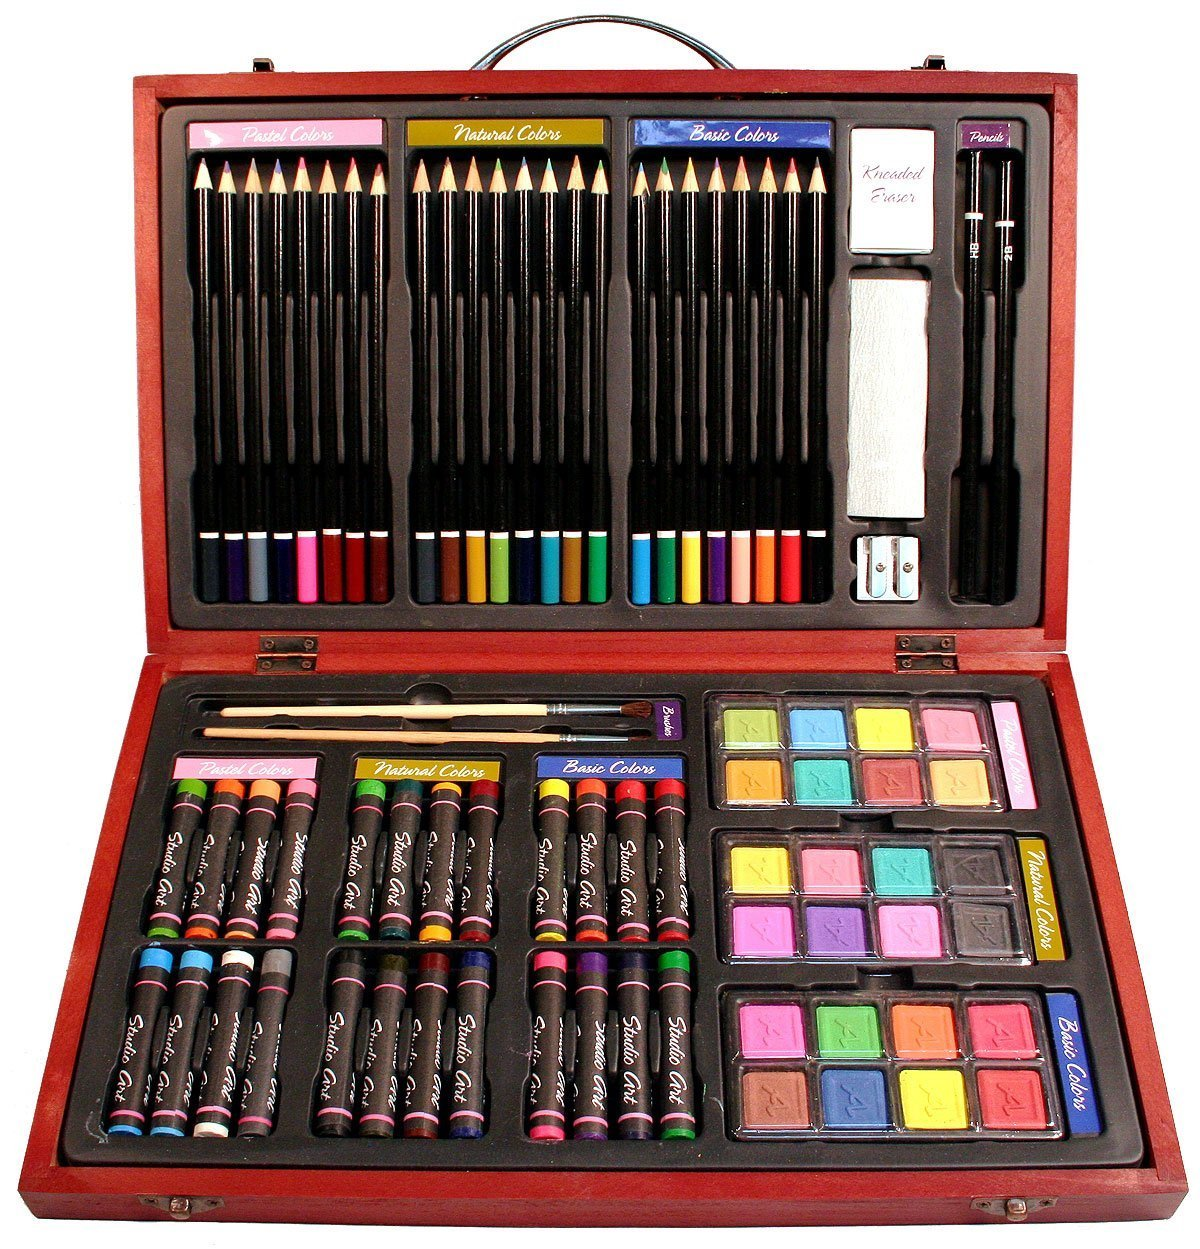 Kids Craft Supplies Wholesale Part - 45: Amazon.com: Nicole Studio Art U0026 Craft Supplies Set In Wood Box For Drawing  And Painting, 79 Piece, Multi Colors